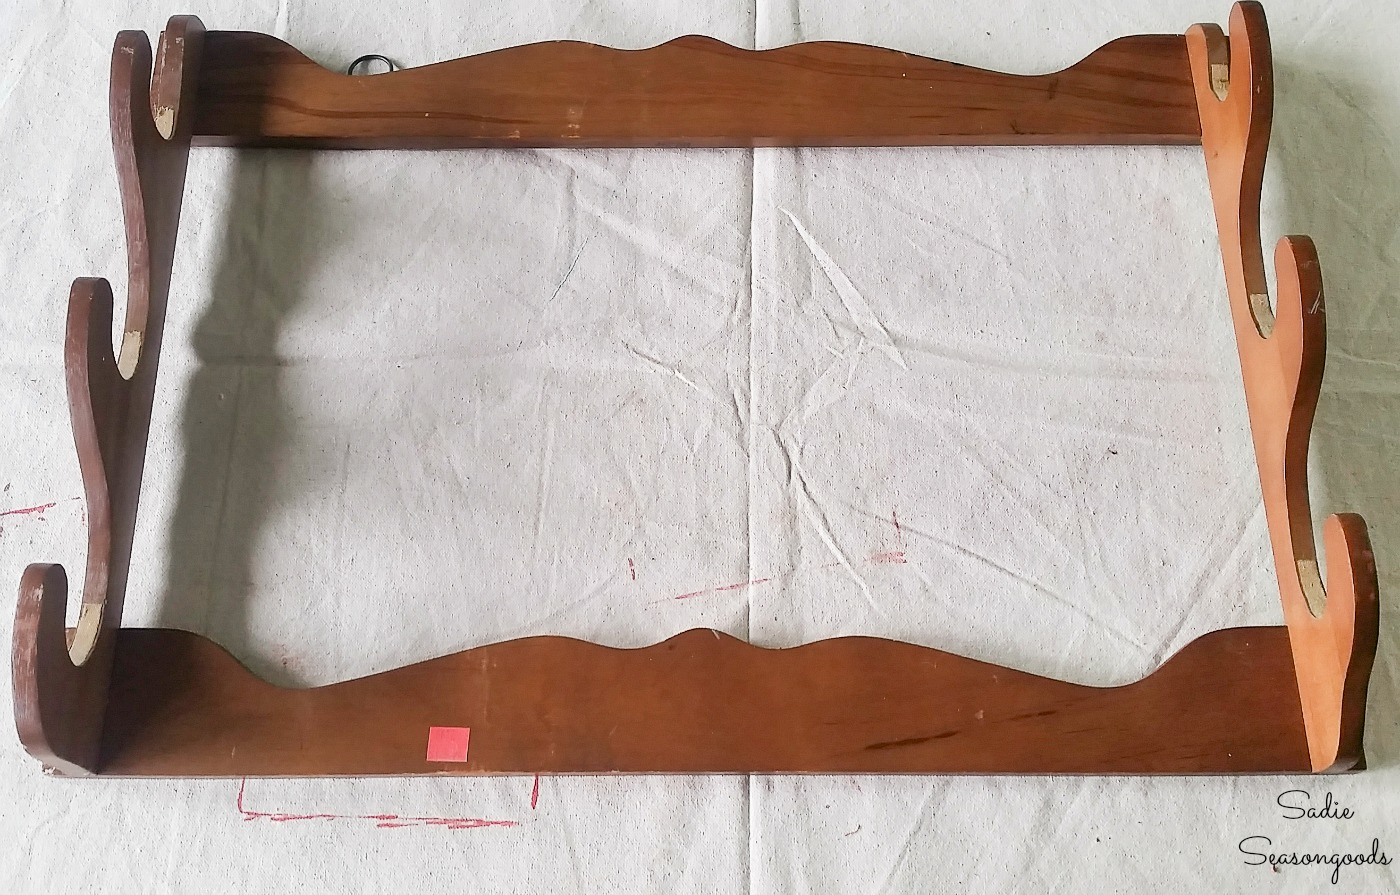 Wooden gun rack for upcycling as a fabric organizer